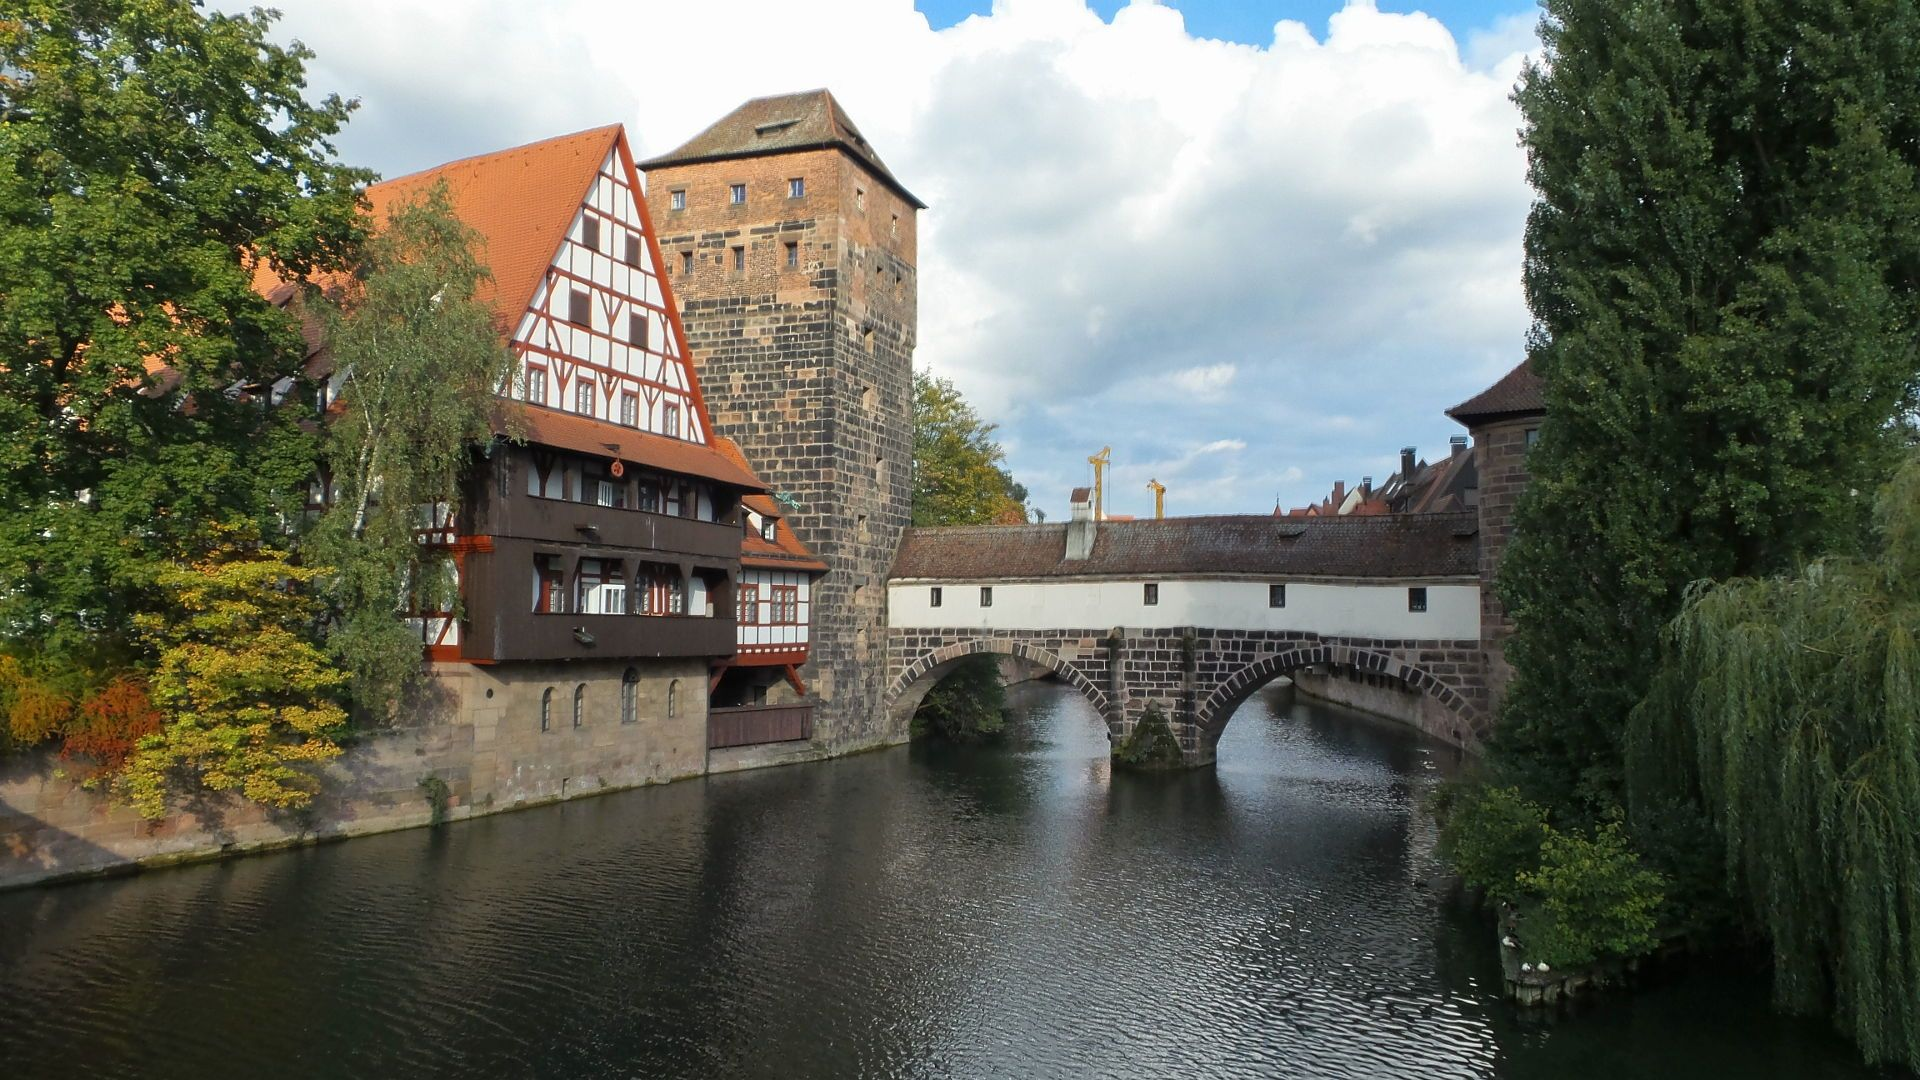 Weinstadel in Nuremberg Germany